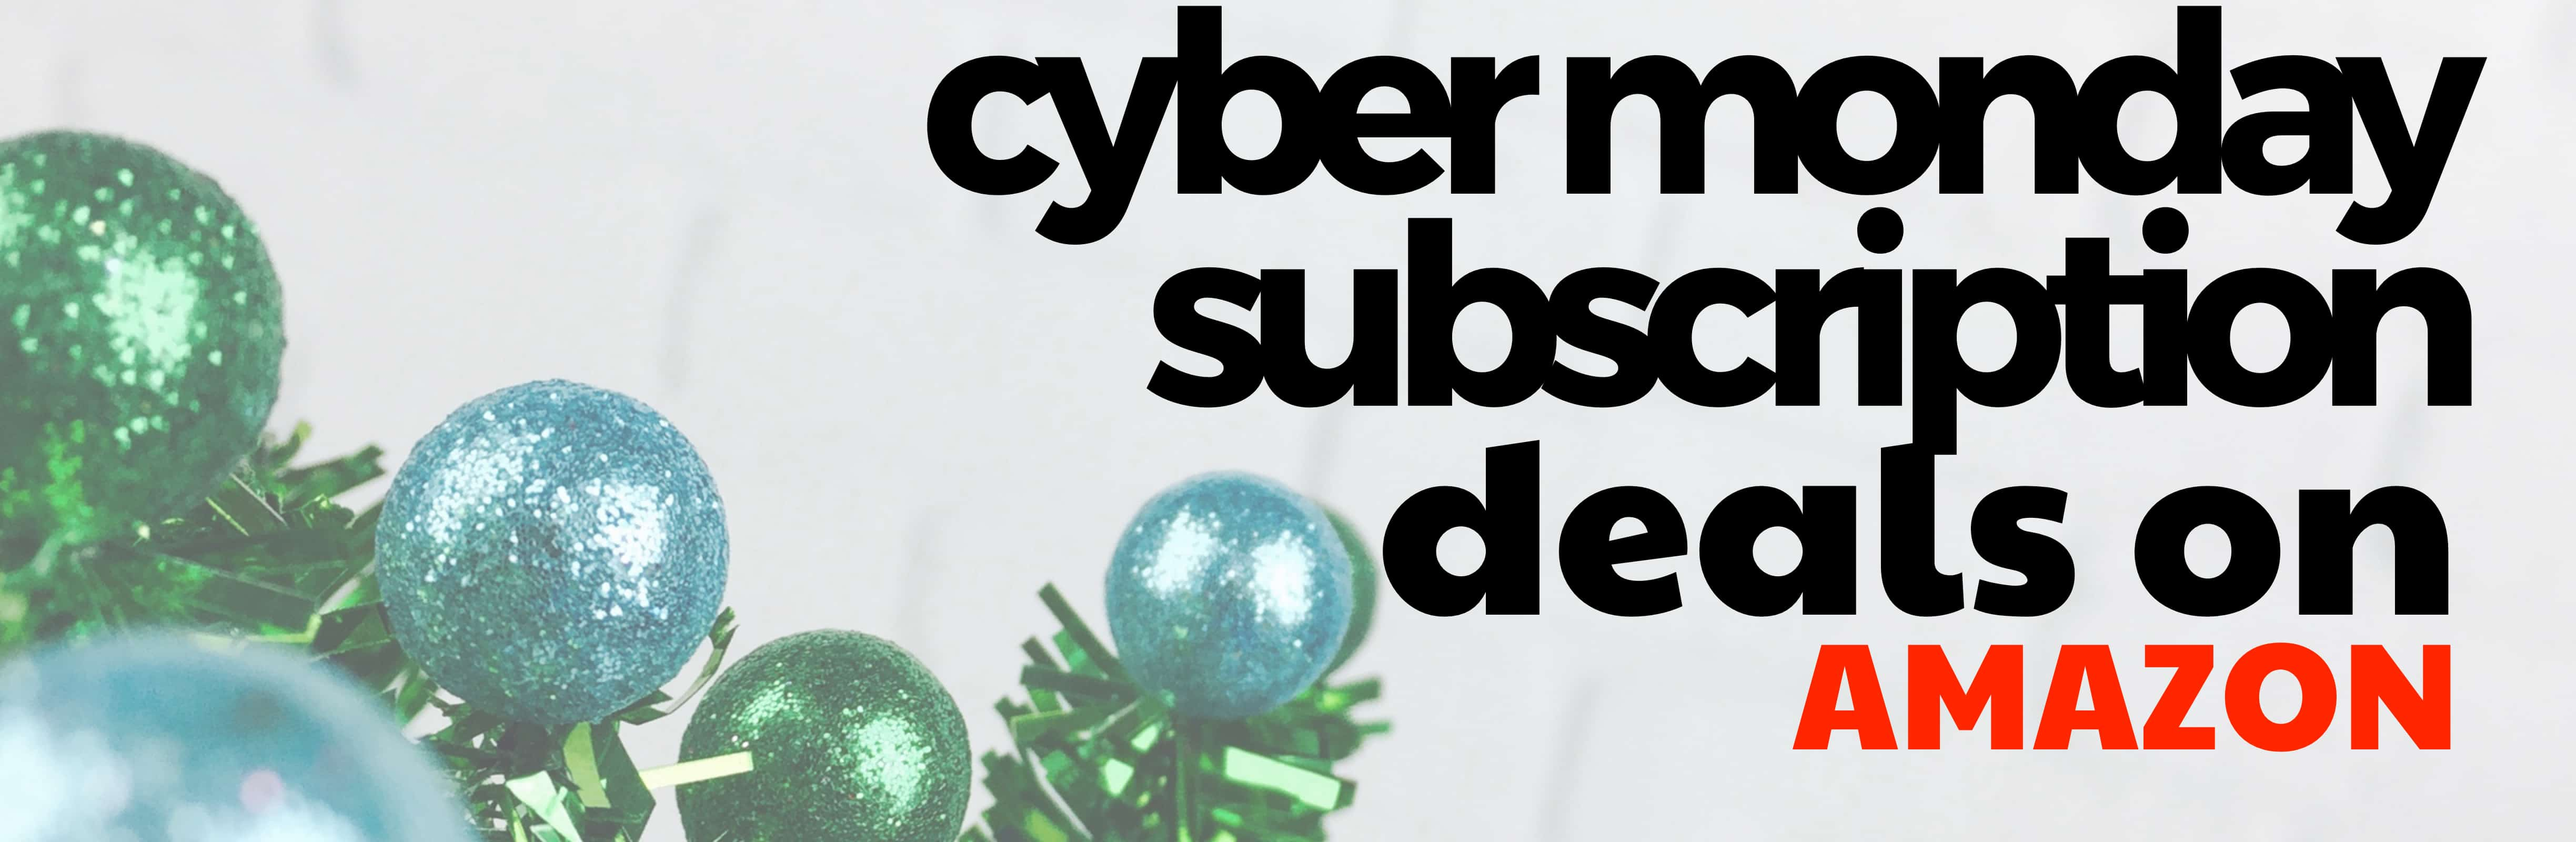 Cyber Monday Subscription Deals On Amazon Hello Subscription